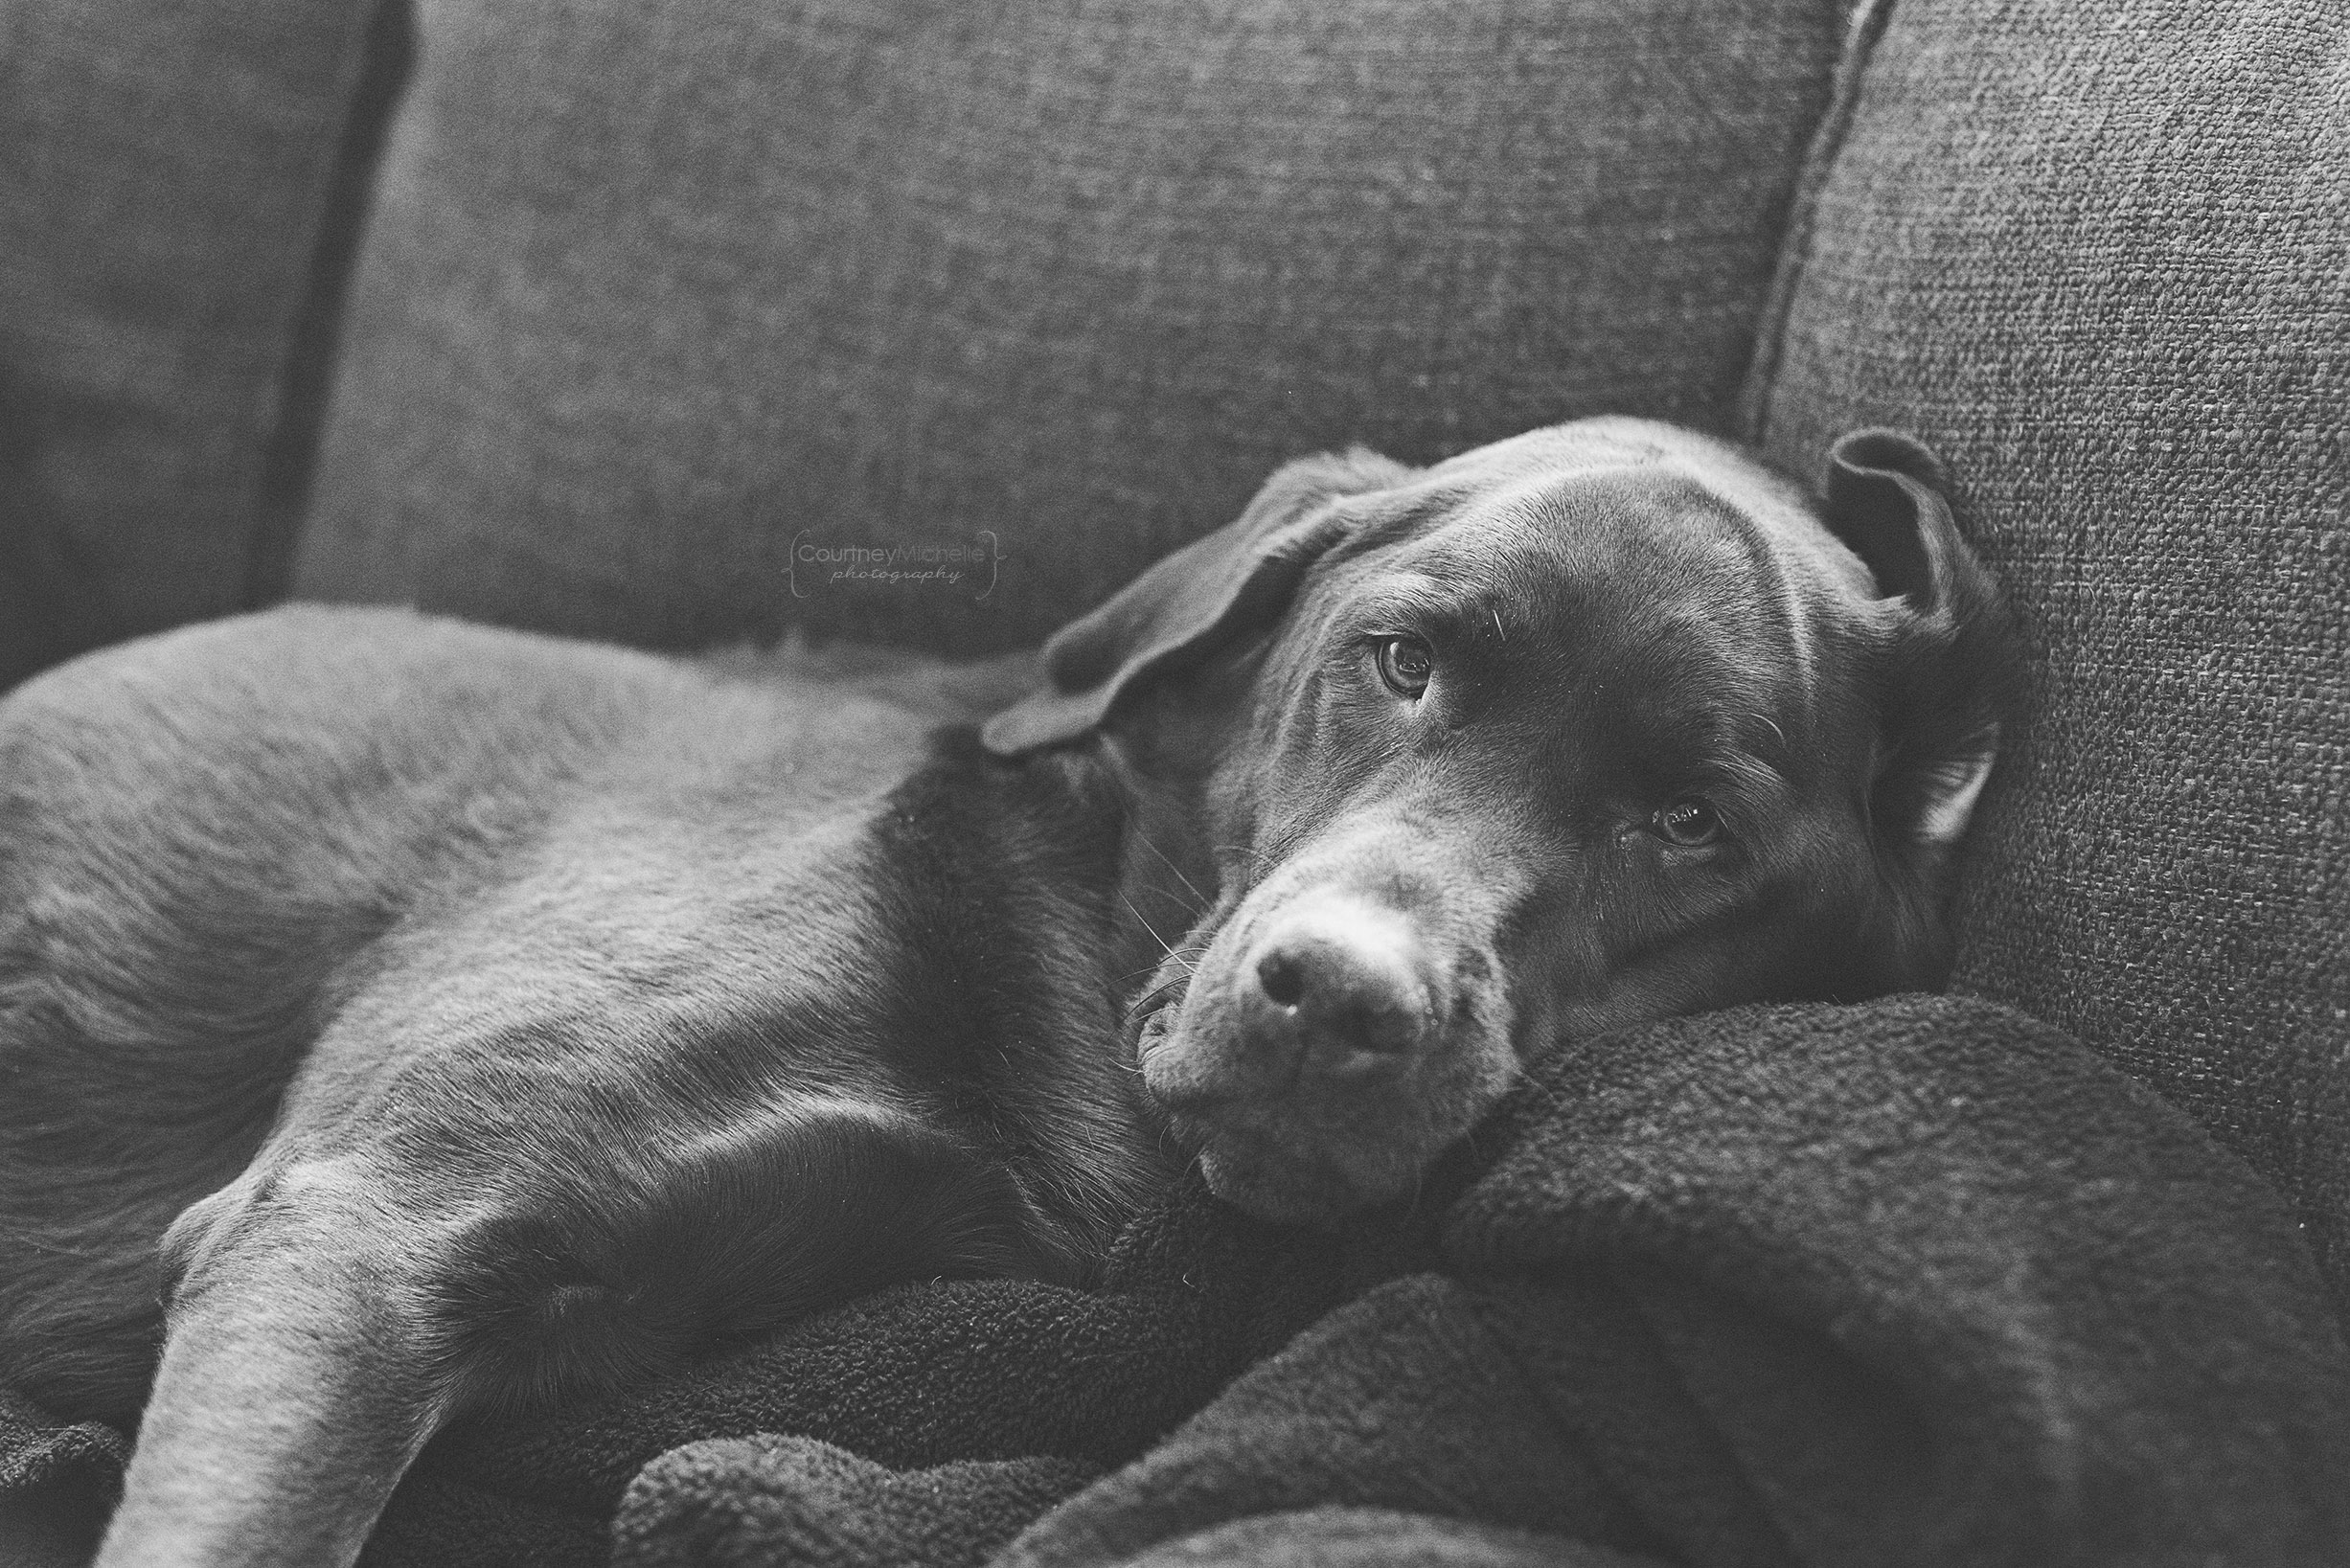 chicago-dog-photographer-chocolate-lab-photography-by-courtney-laper©COPYRIGHTCMP-1711bw.jpg